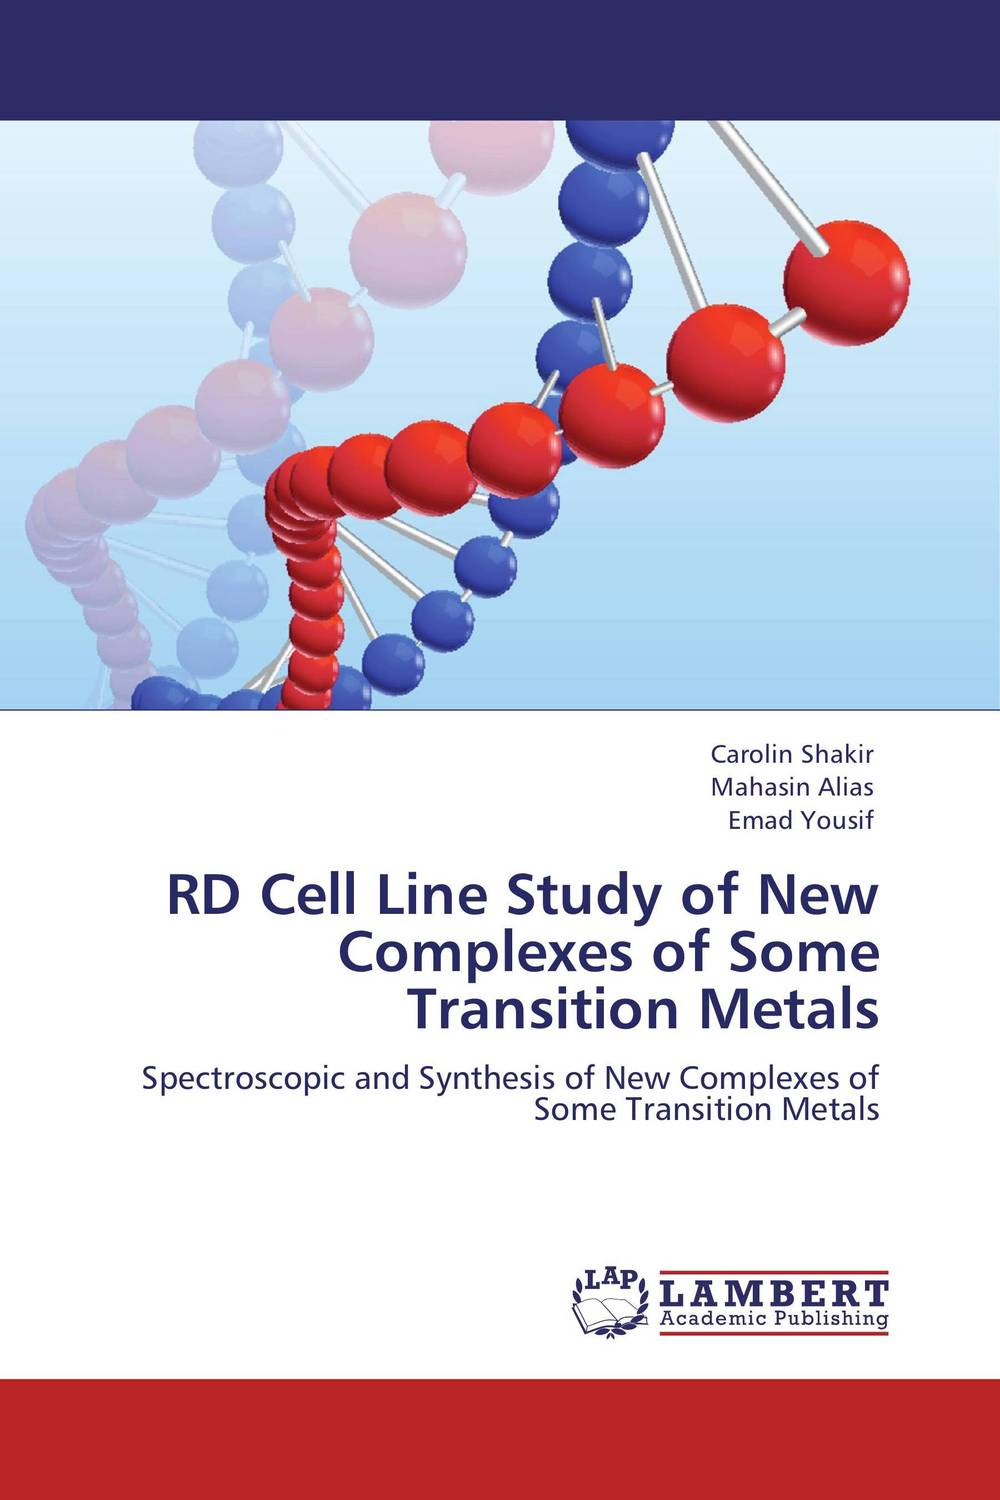 RD Cell Line Study of New Complexes of Some Transition Metals marwan a ibrahim effect of heavy metals on haematological and testicular functions